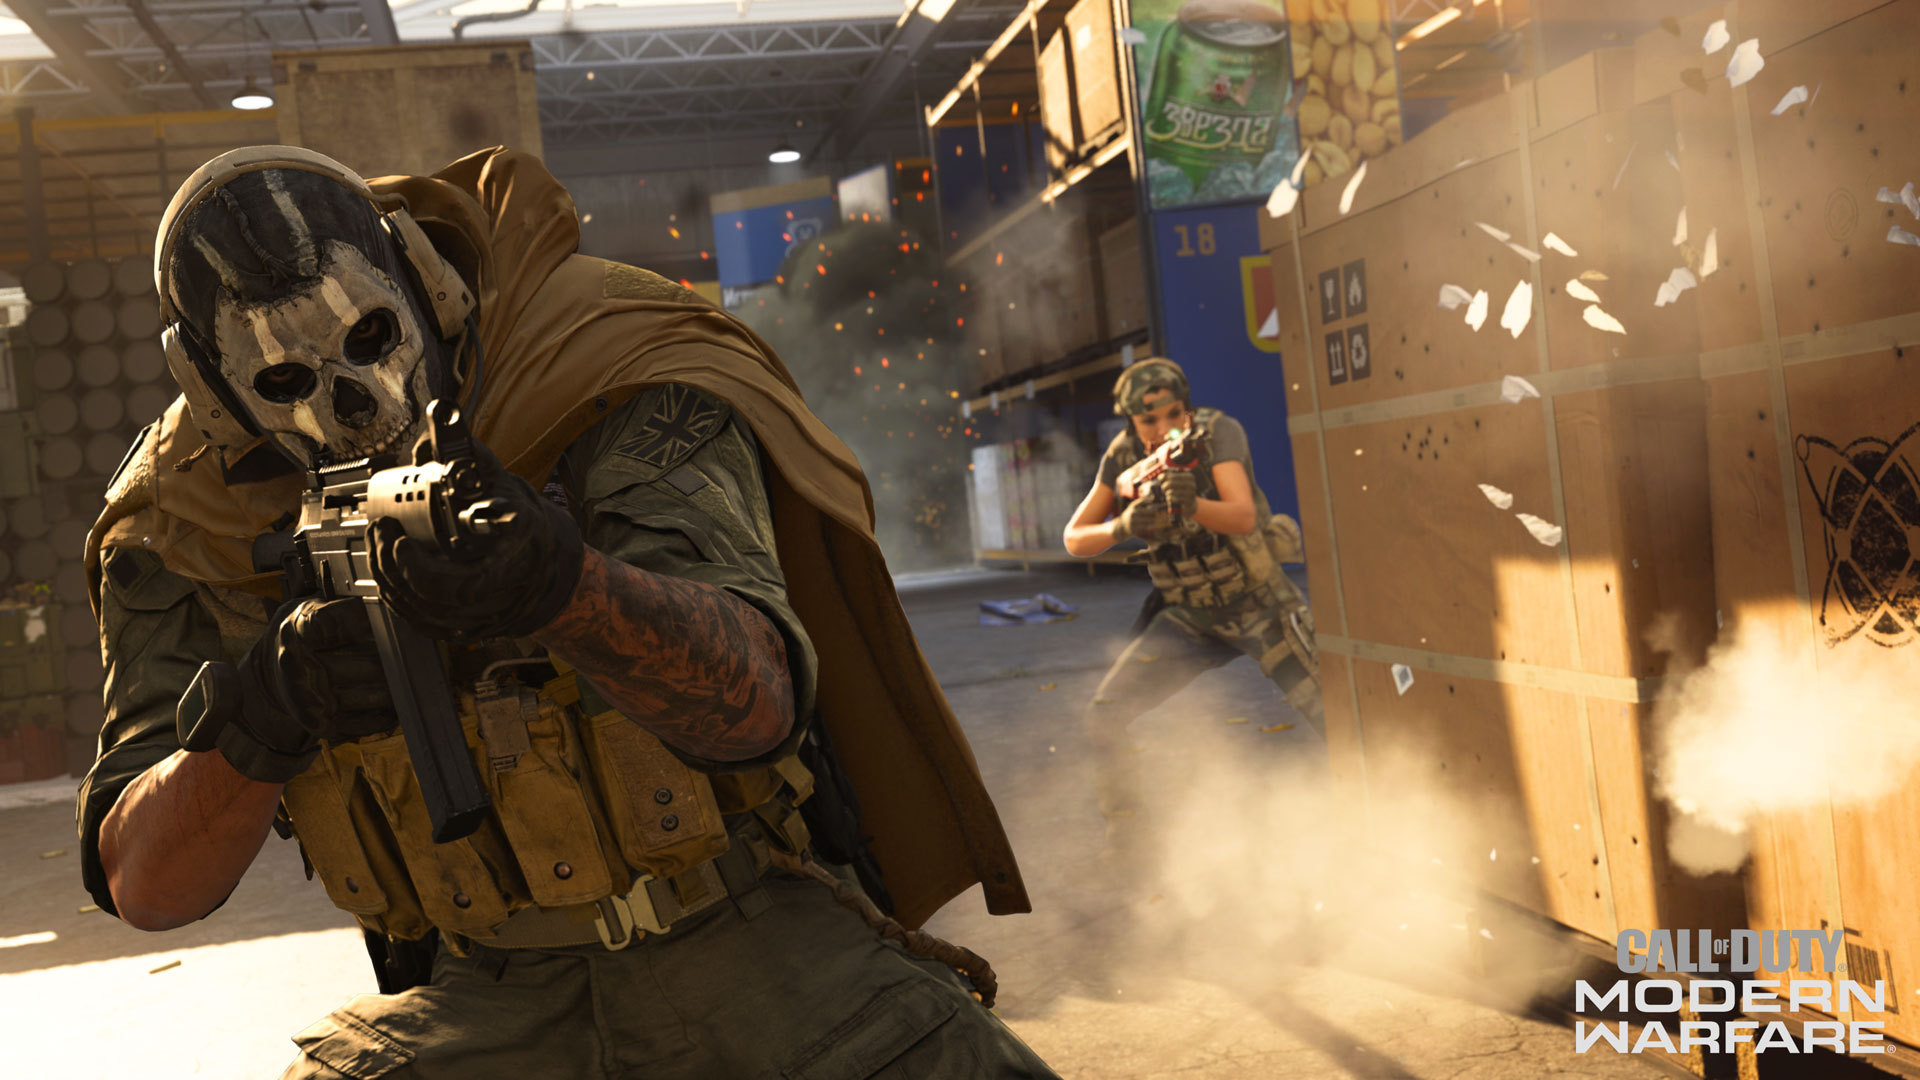 A fighter in a stylized skull mask takes aim in Call of Duty Warzone